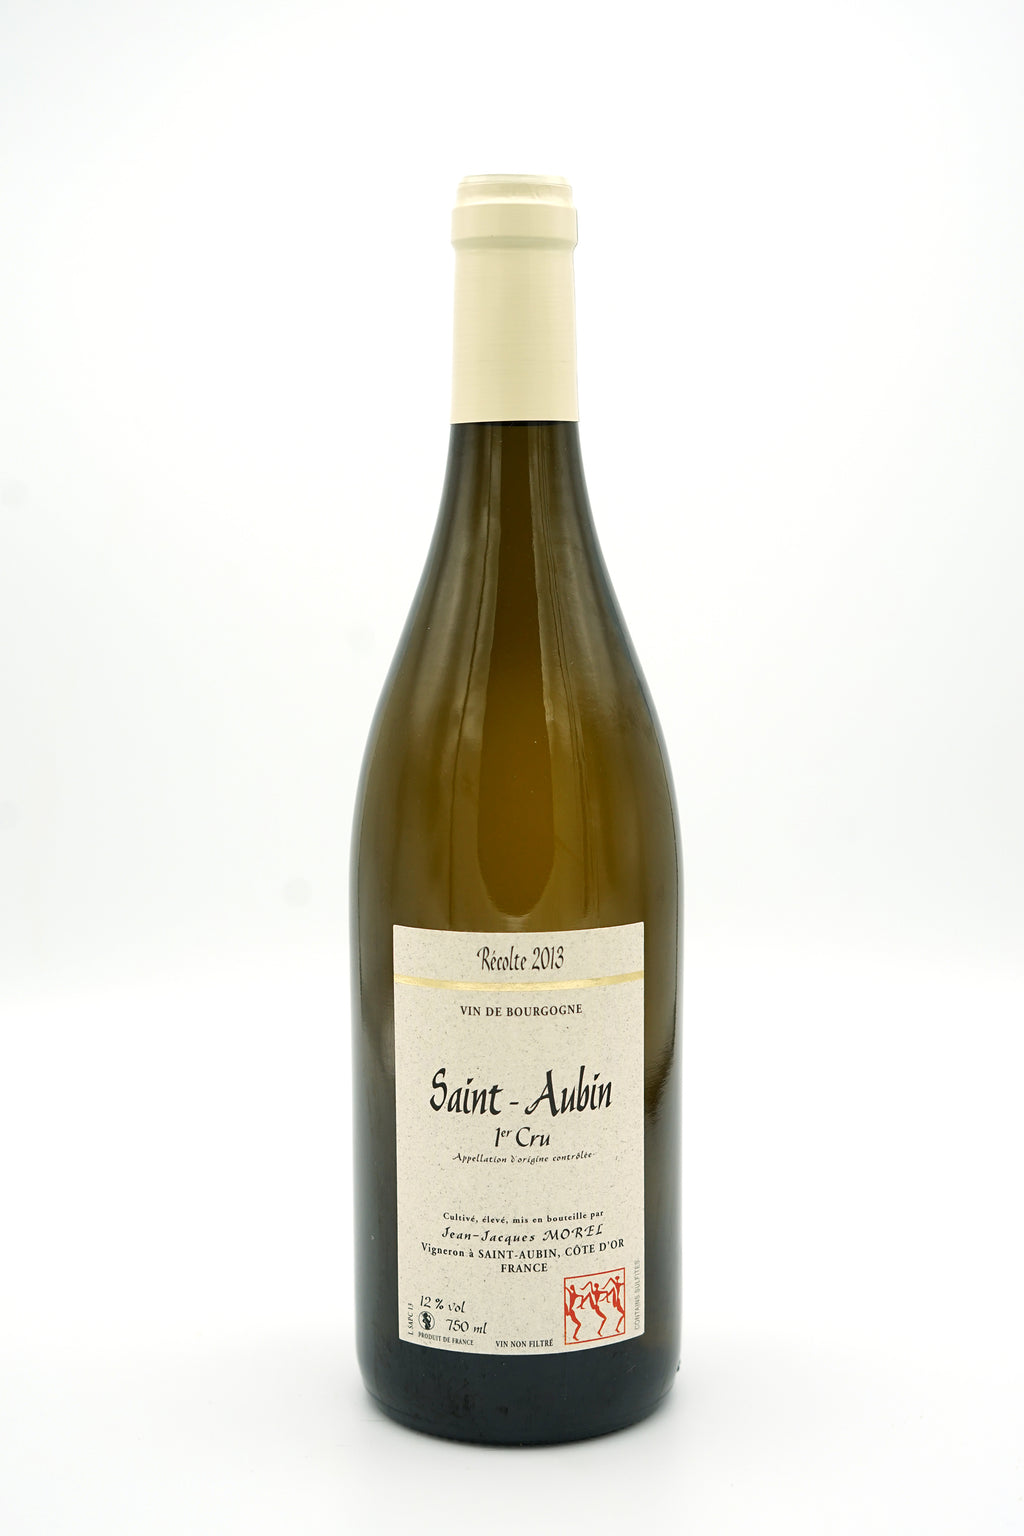 Saint-Aubin 1er Cru Blanc 2013 - Domaine Jean-Jacques Morel - SOLD OUT